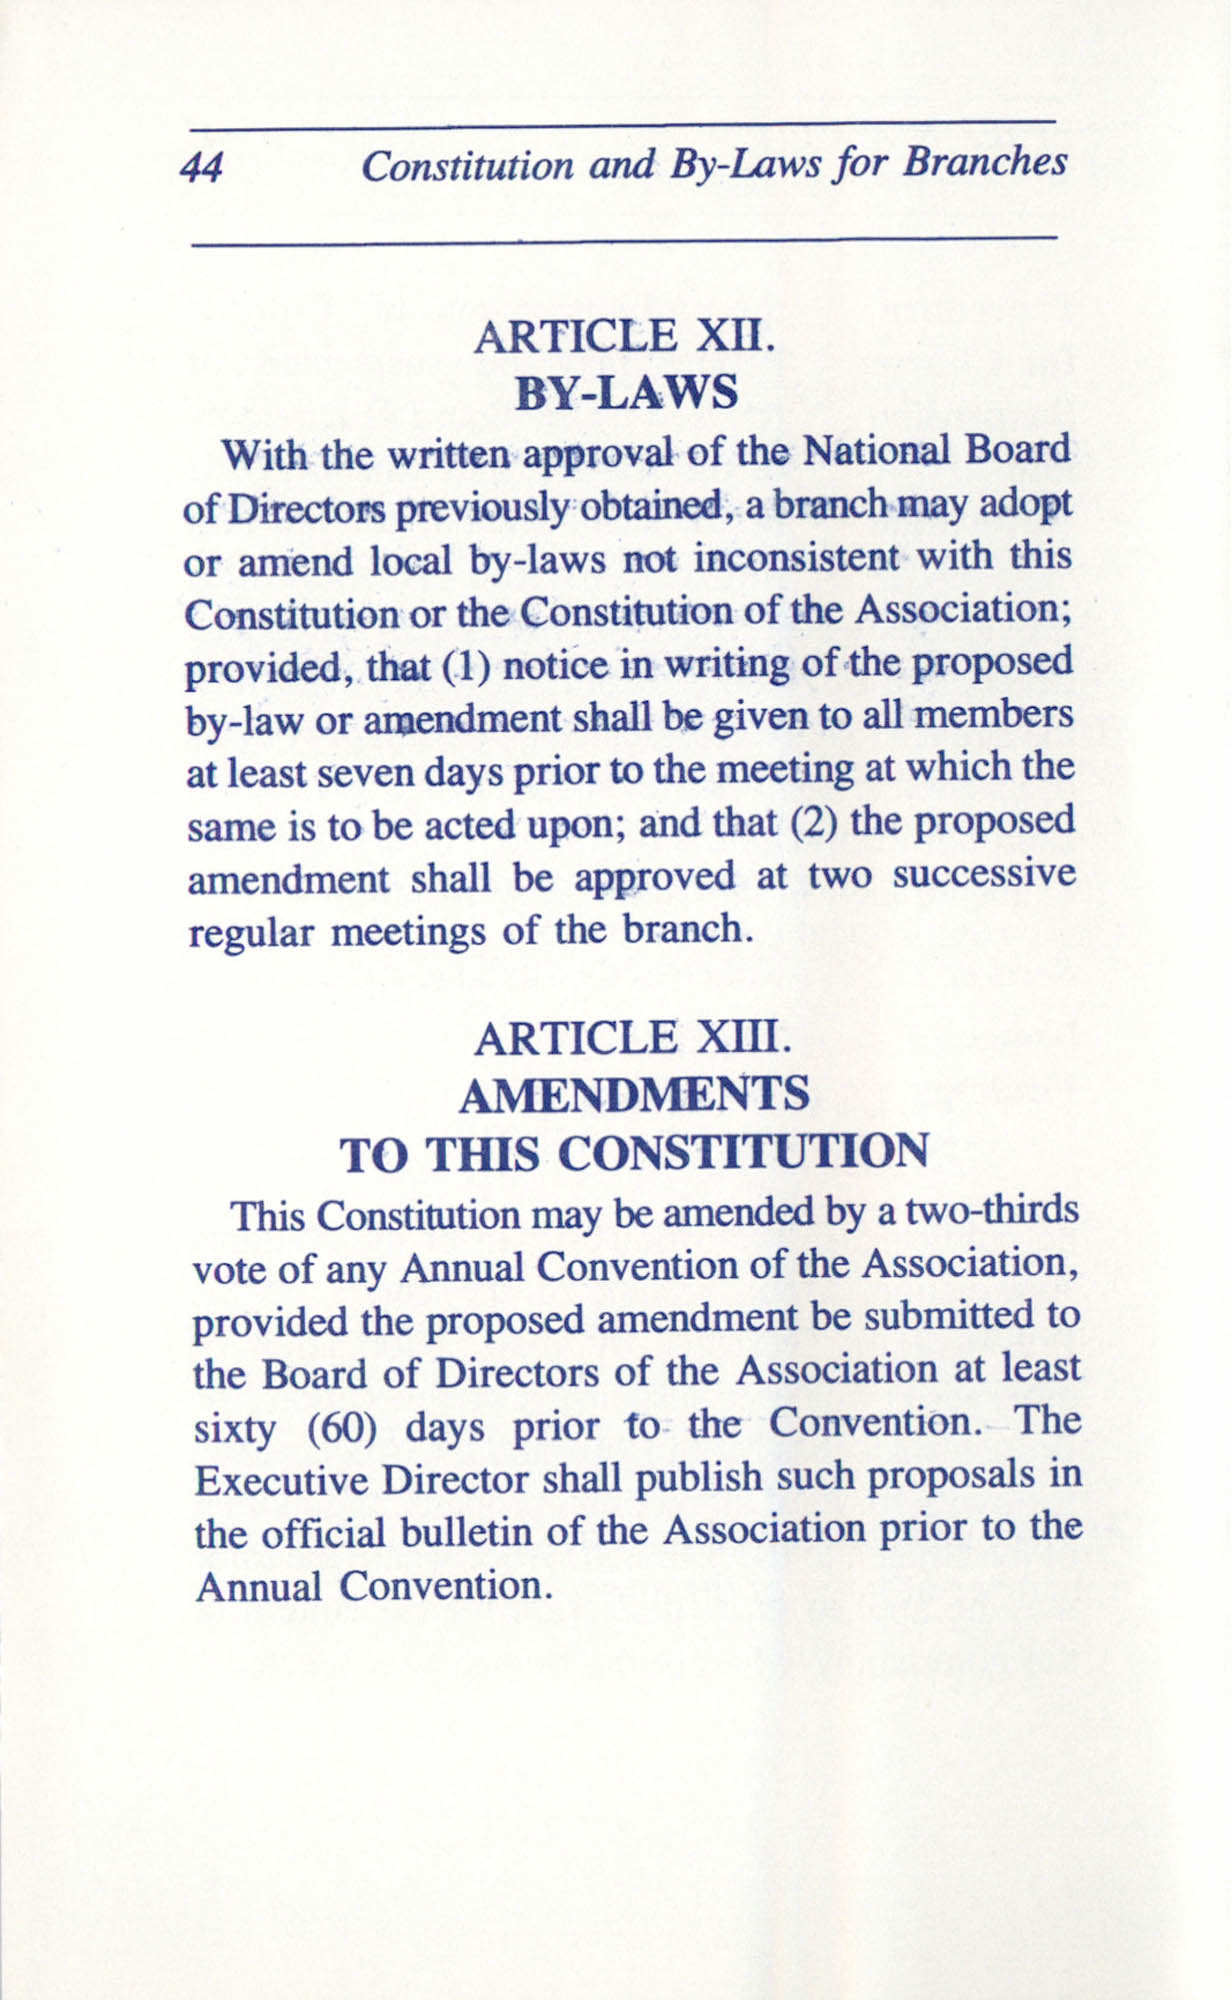 Constitution and By-Laws for Branches of the NAACP, June 1993, Page 44